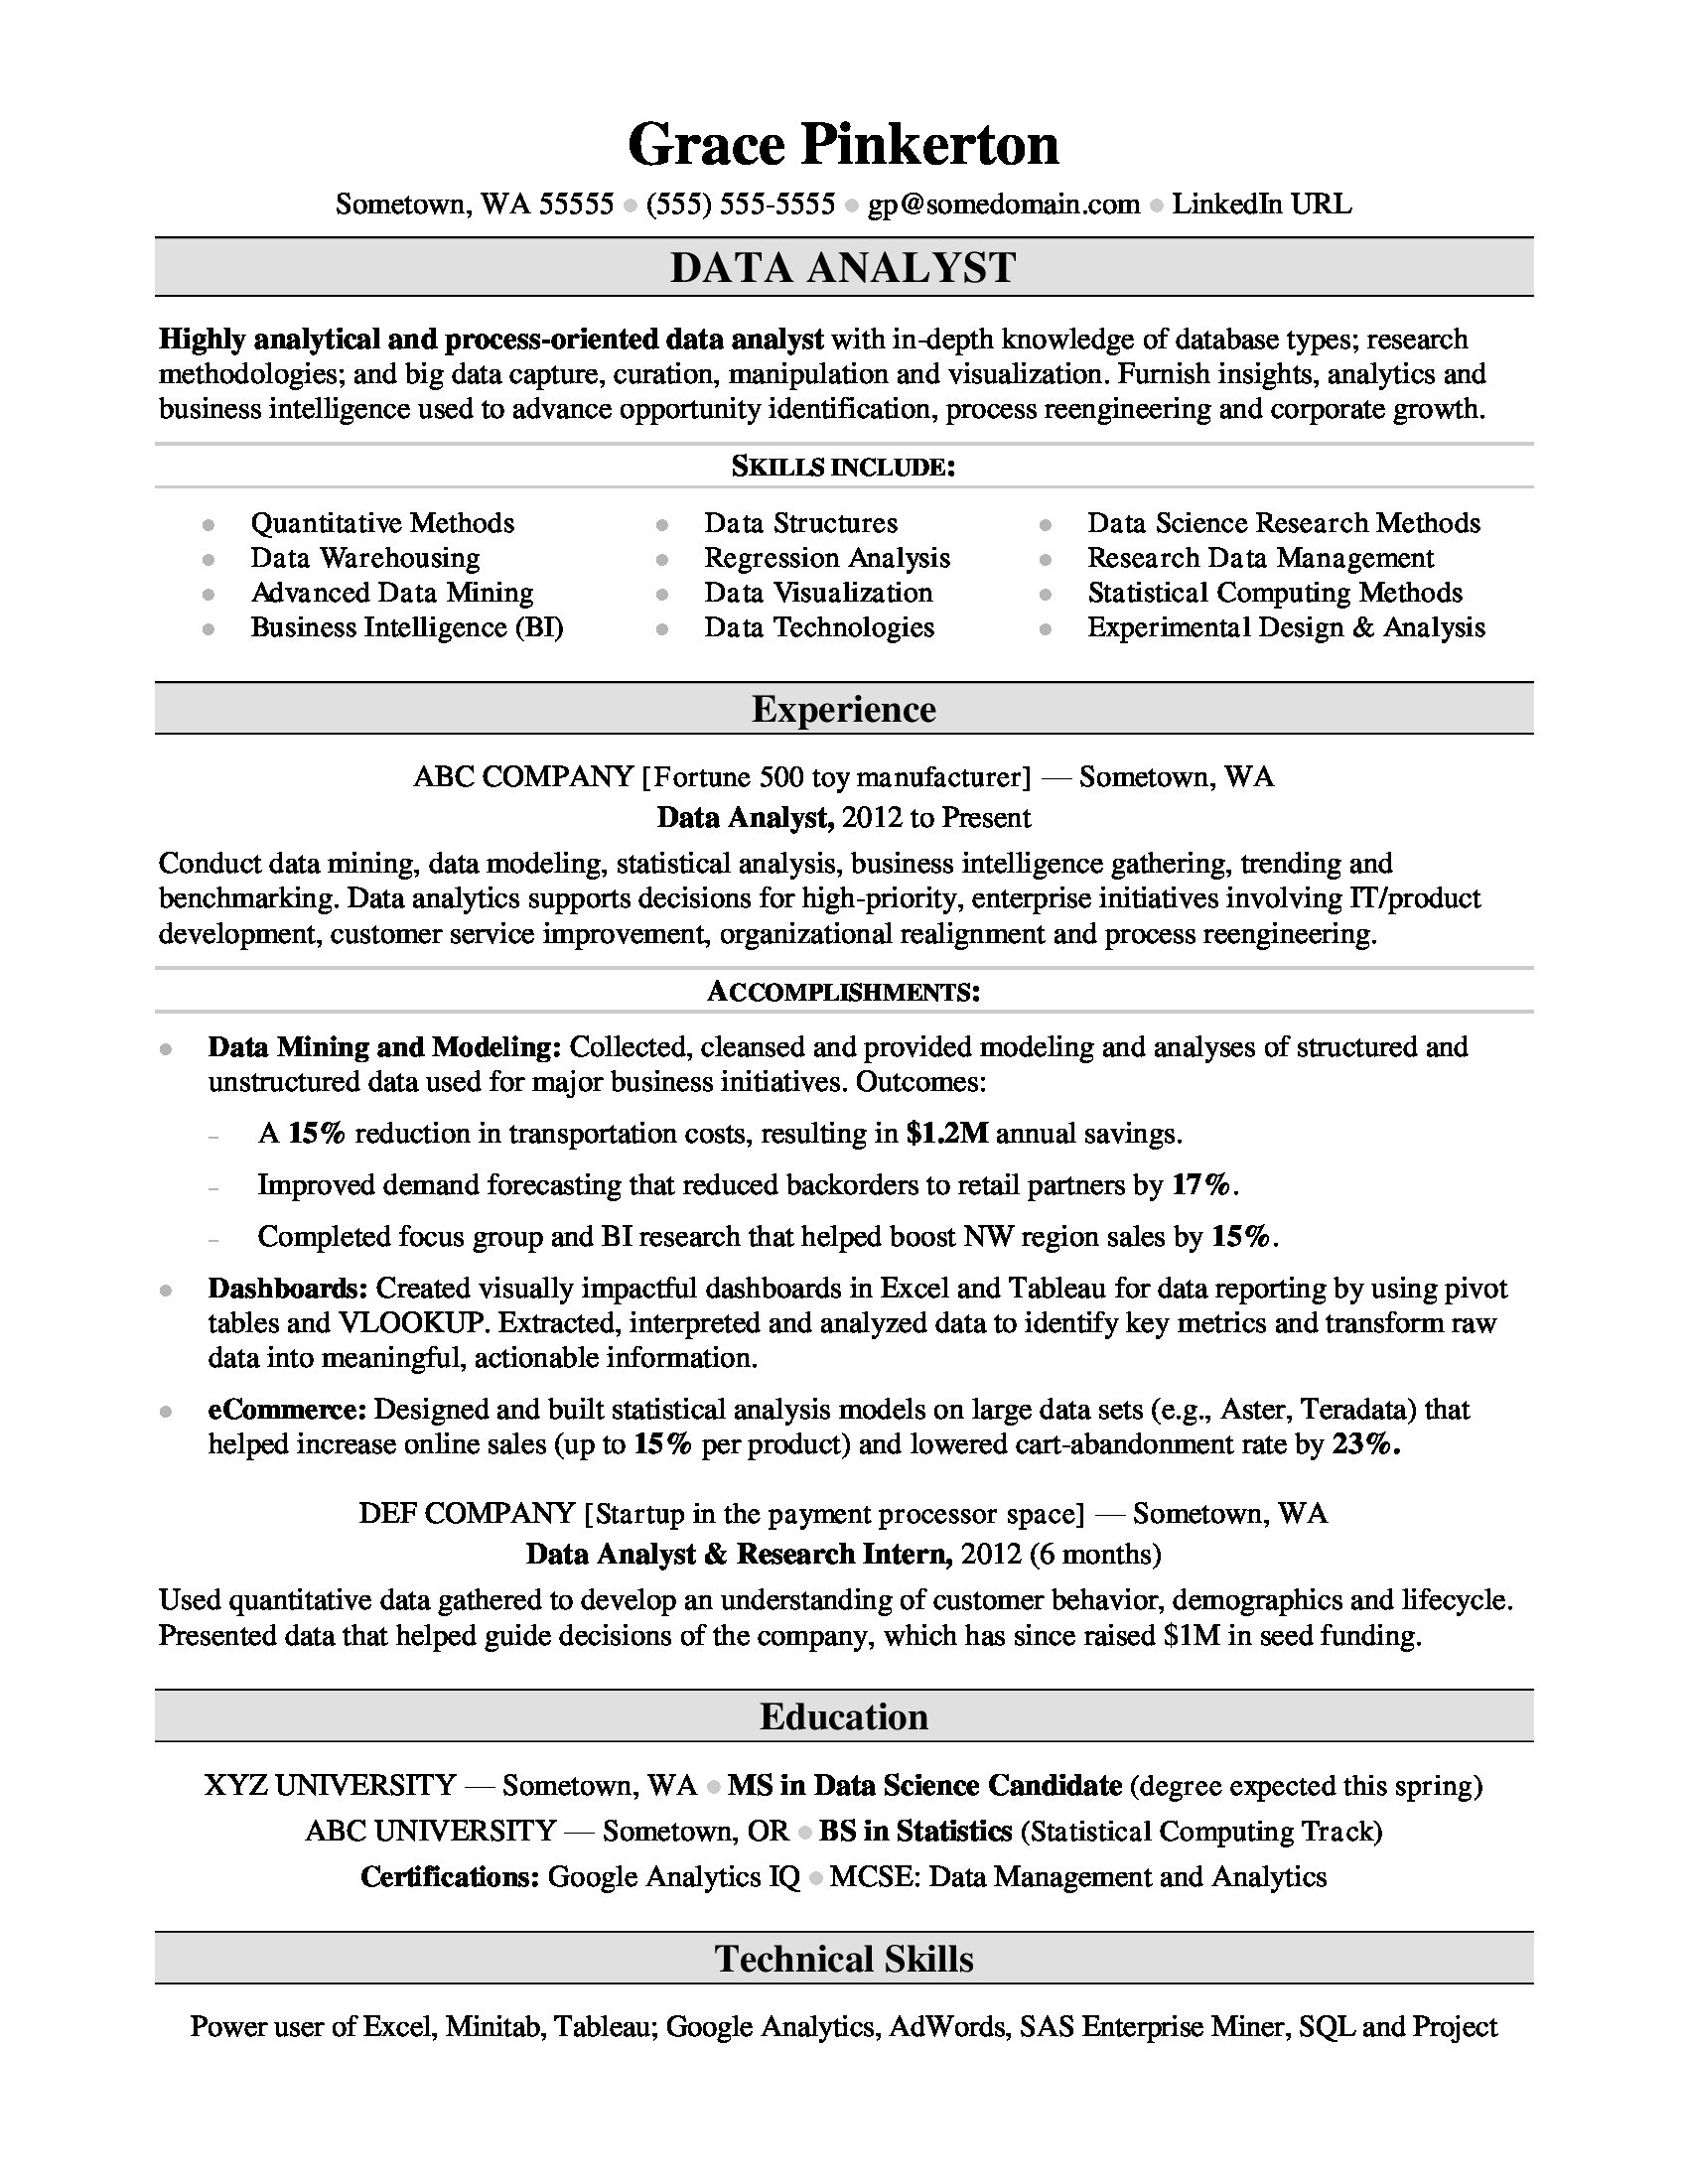 Superior Data Analyst Resume Sample Pertaining To Resume Data Analyst